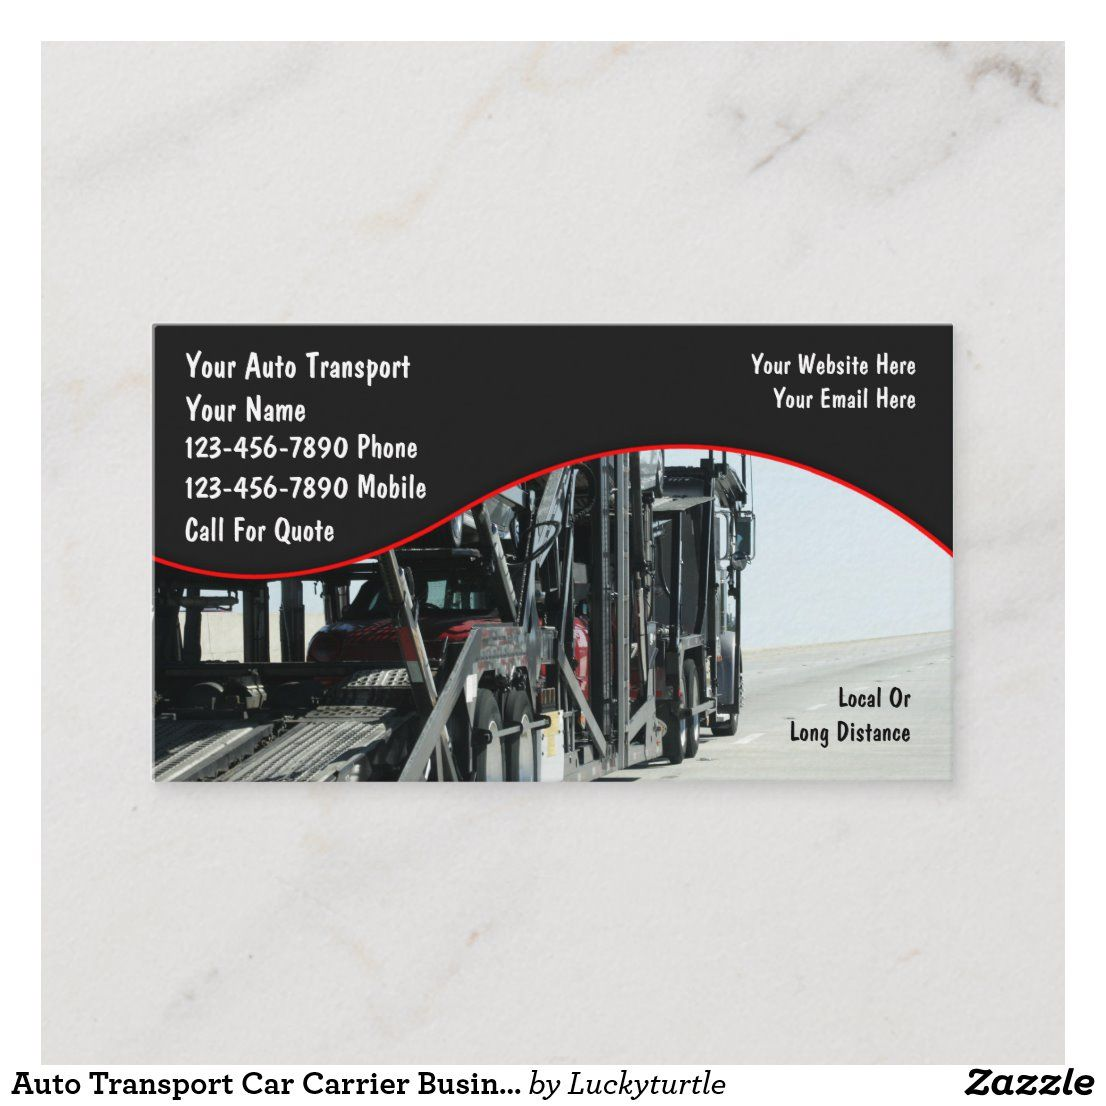 Auto transport car carrier business cards in